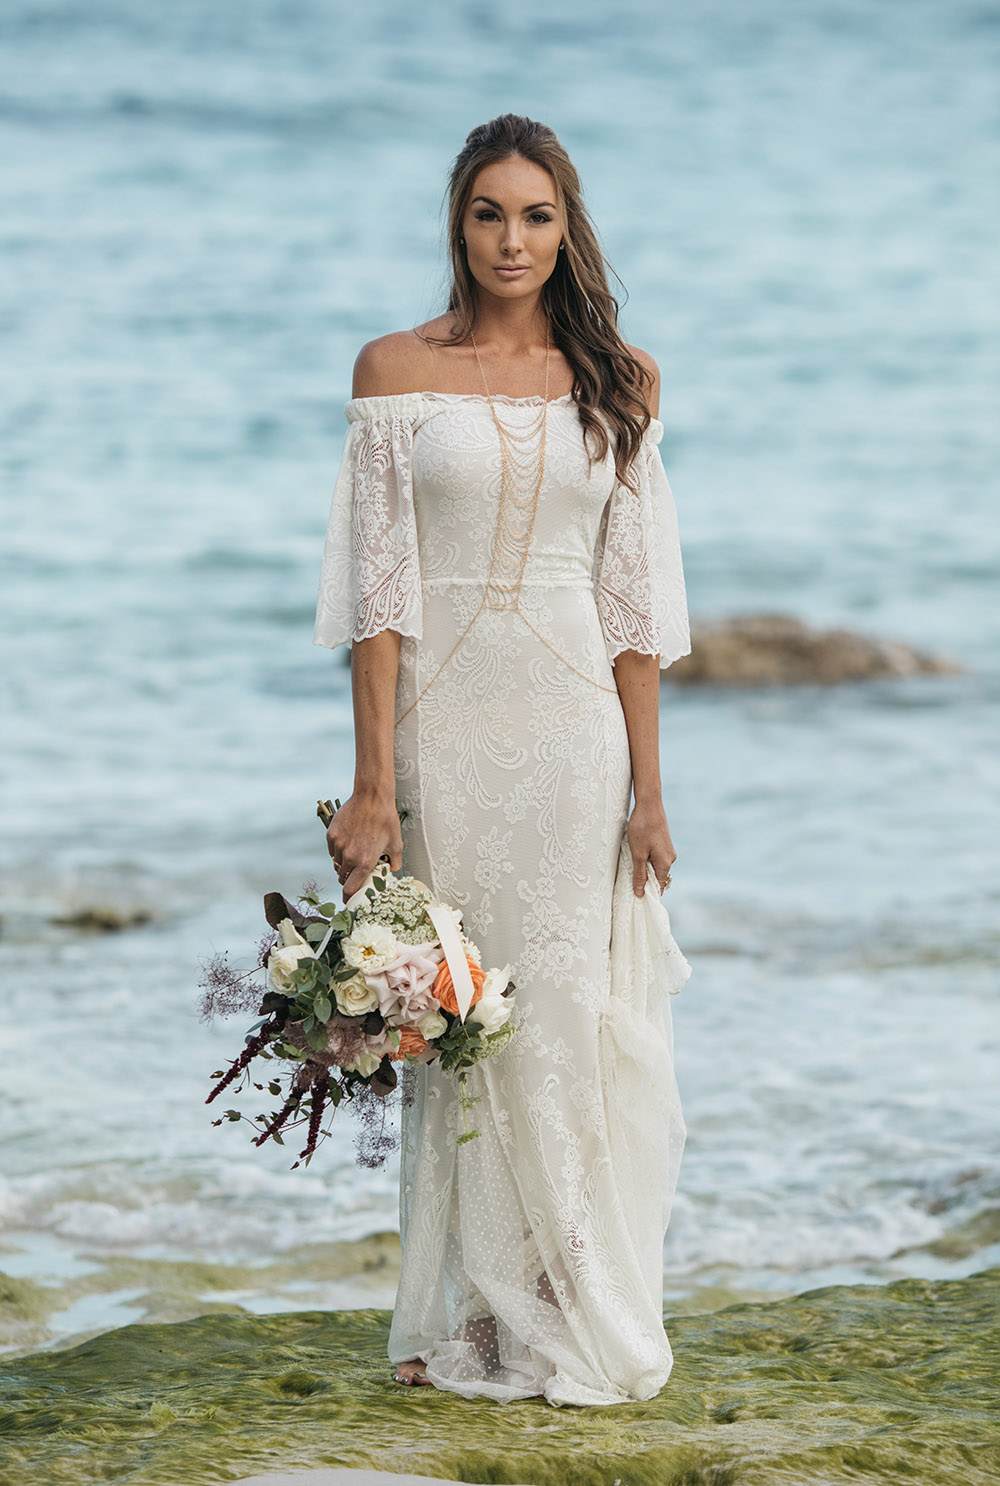 Tips On Choosing Beach Wedding Dresses For Destination. Vera Wang Wedding Dress Quotes. Blush Wedding Dresses Sydney. Modest Wedding Dresses Vancouver. Chiffon Wedding Dresses 2013. Blush Wedding Dress Shop Castle Donington. Traditional Cinderella Wedding Dresses. Simple Corset Wedding Dresses. Casual Wedding Dresses For The Beach